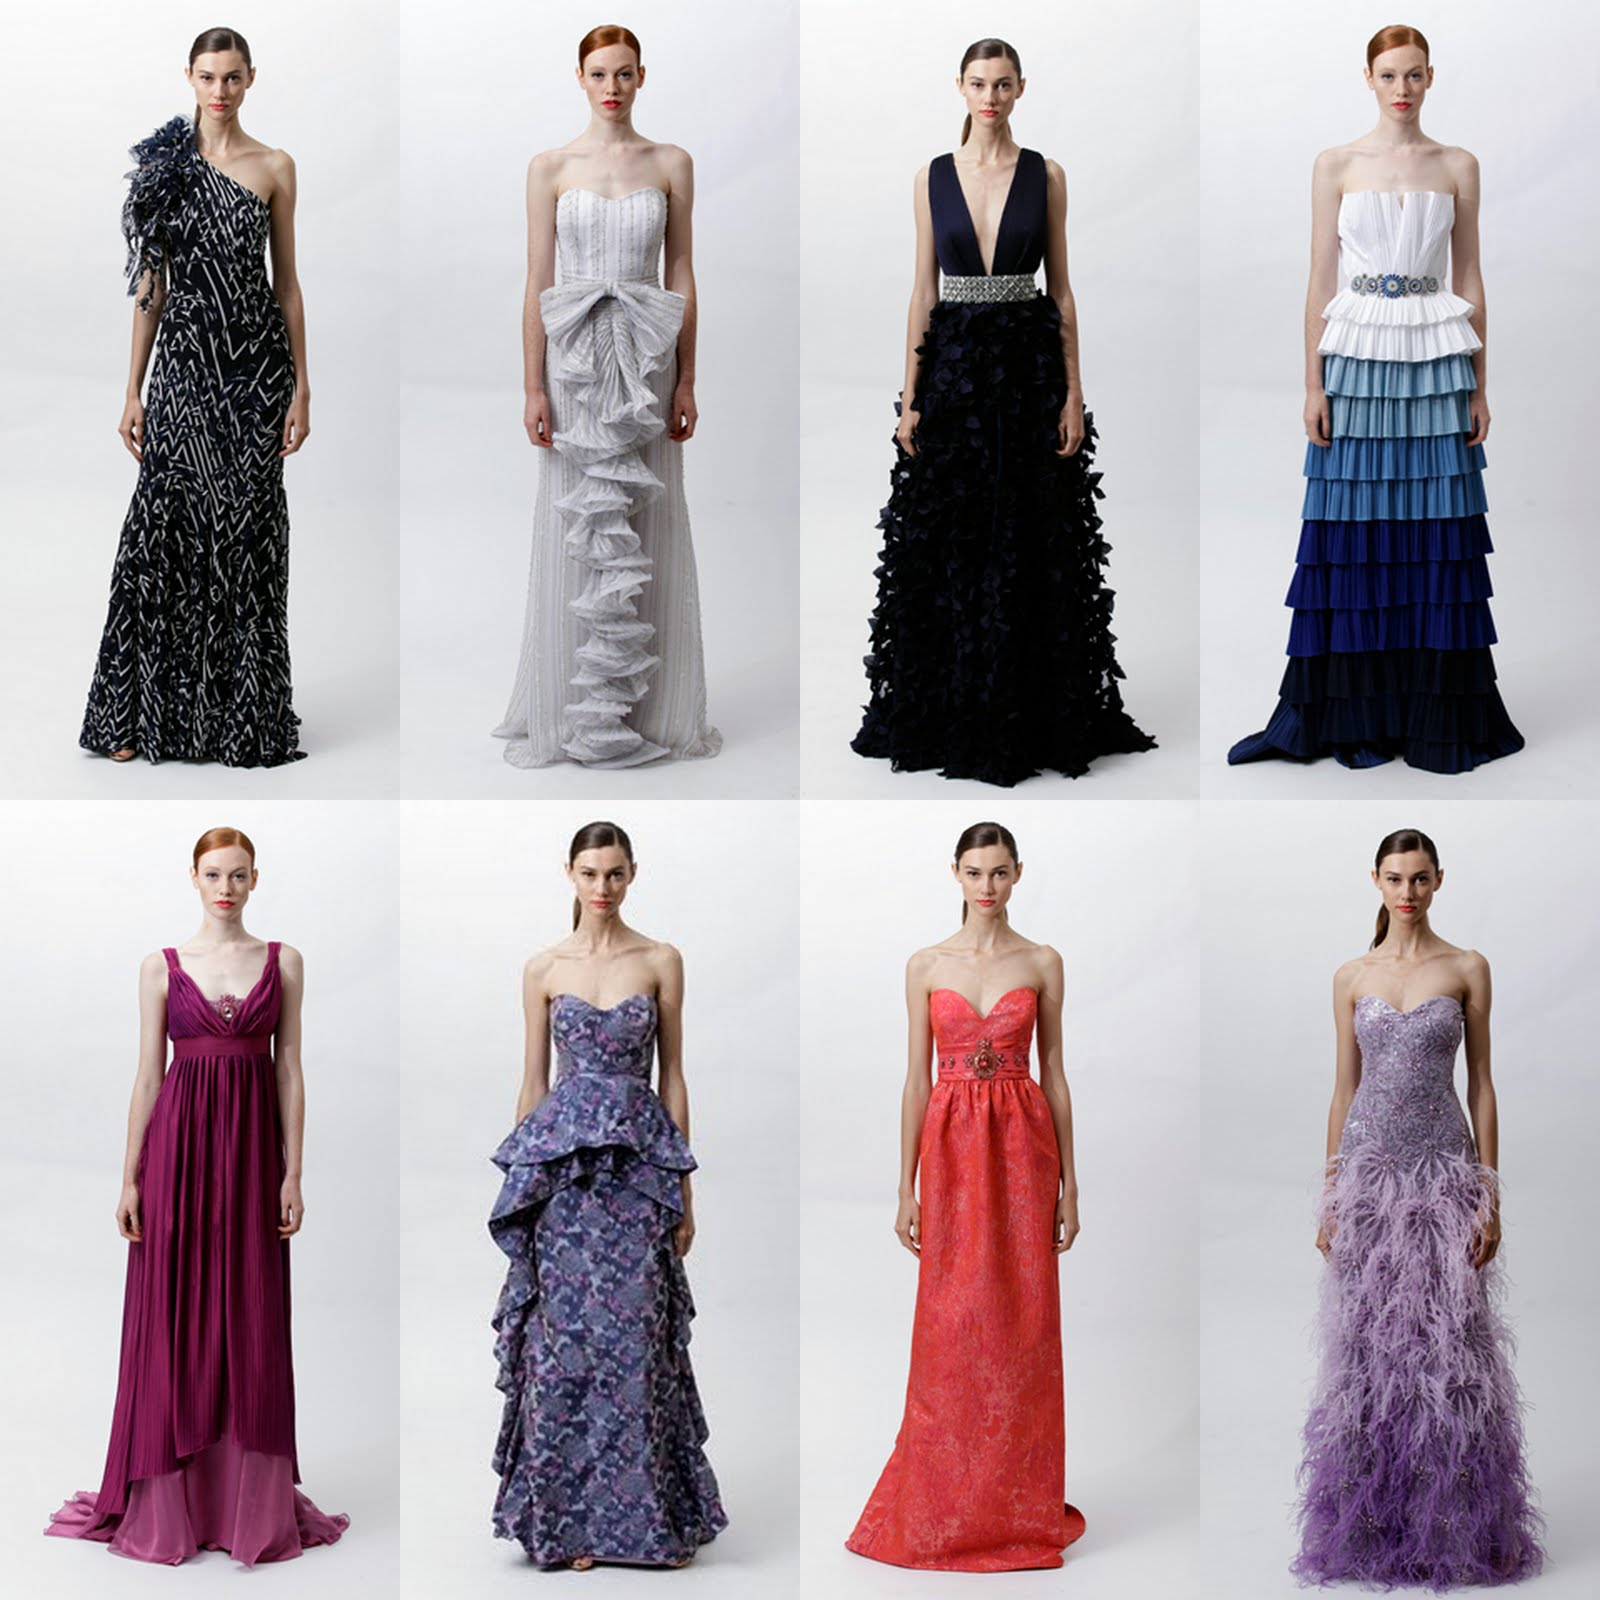 9393f7dc61b Lord And Taylor Evening Dresses - Tbdress.com